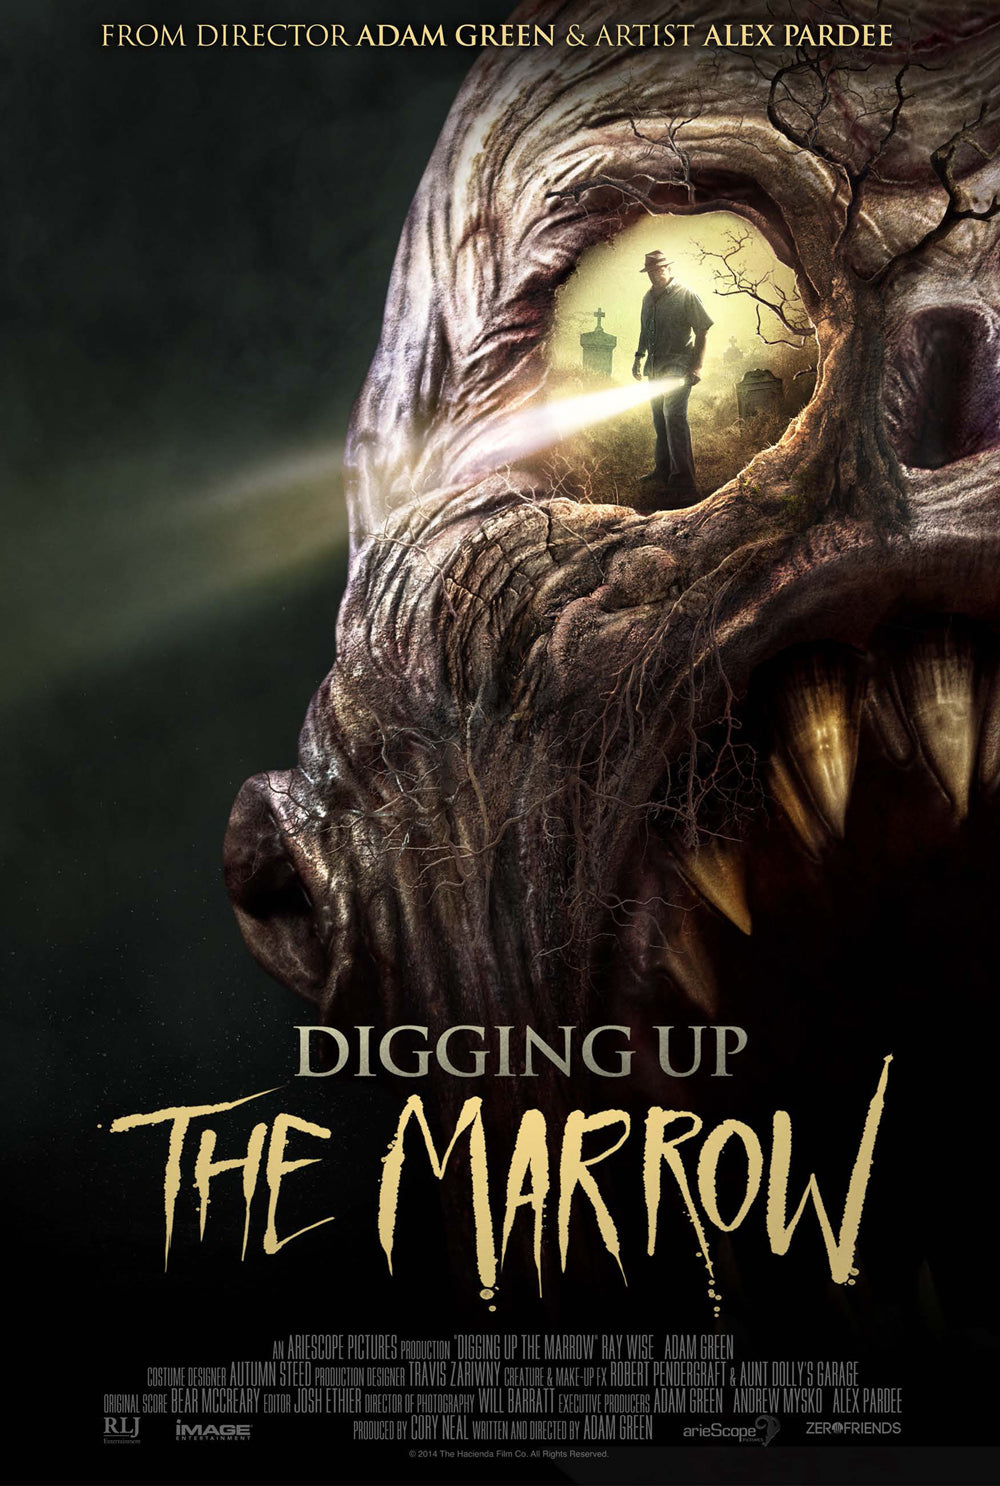 DIGGING UP THE MARROW - Autographed Full Size US Theatrical Poster